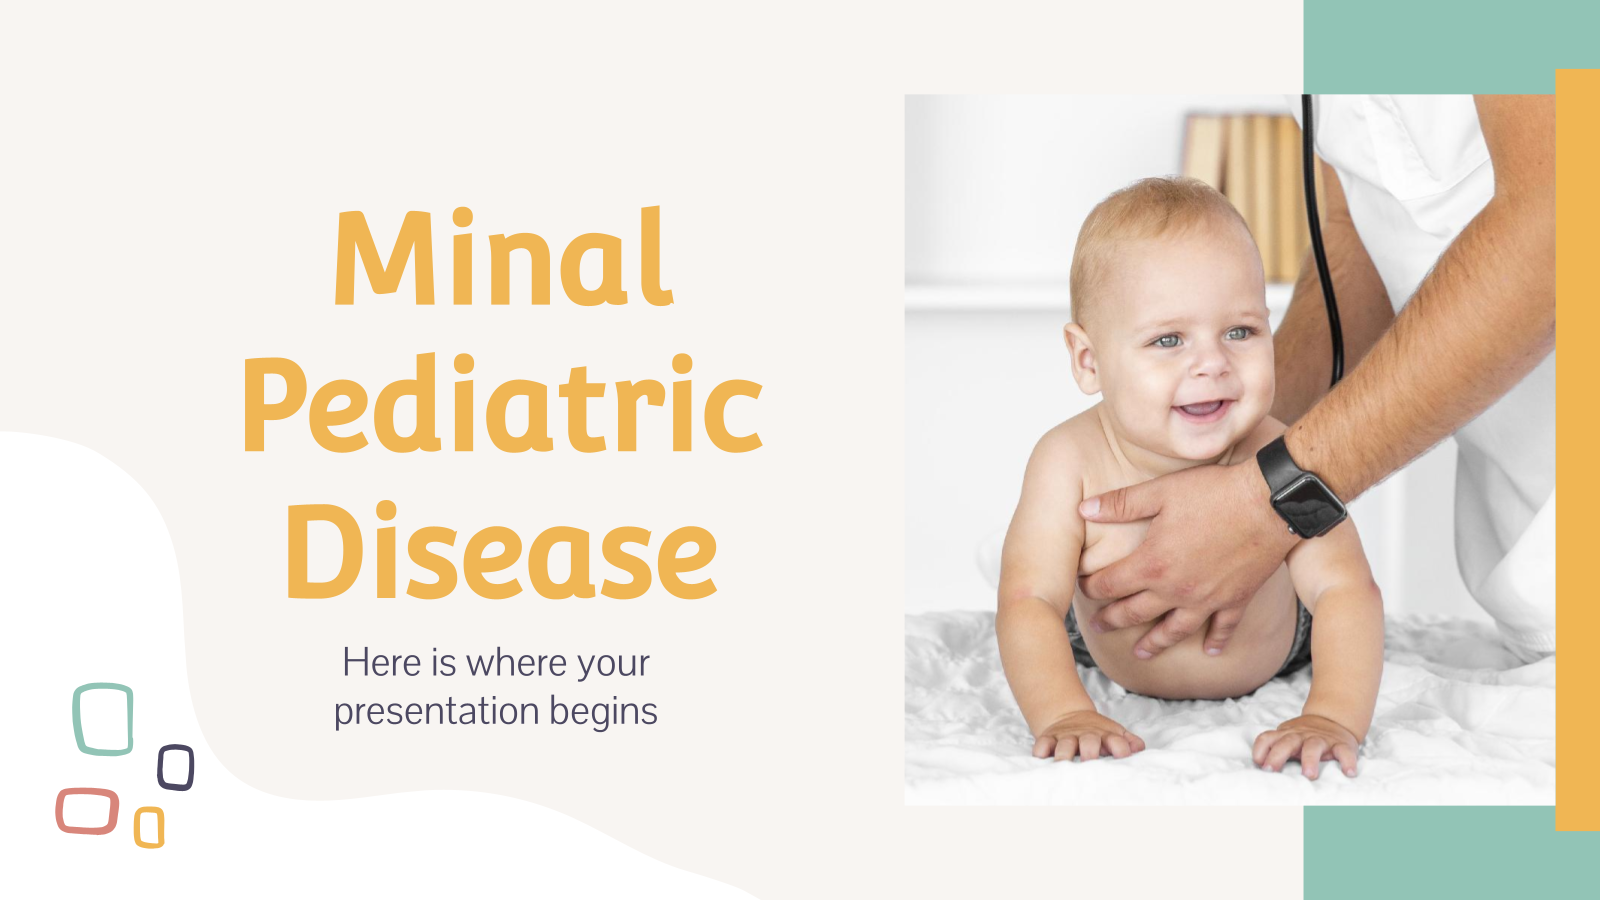 Minal Pediatric Disease presentation template